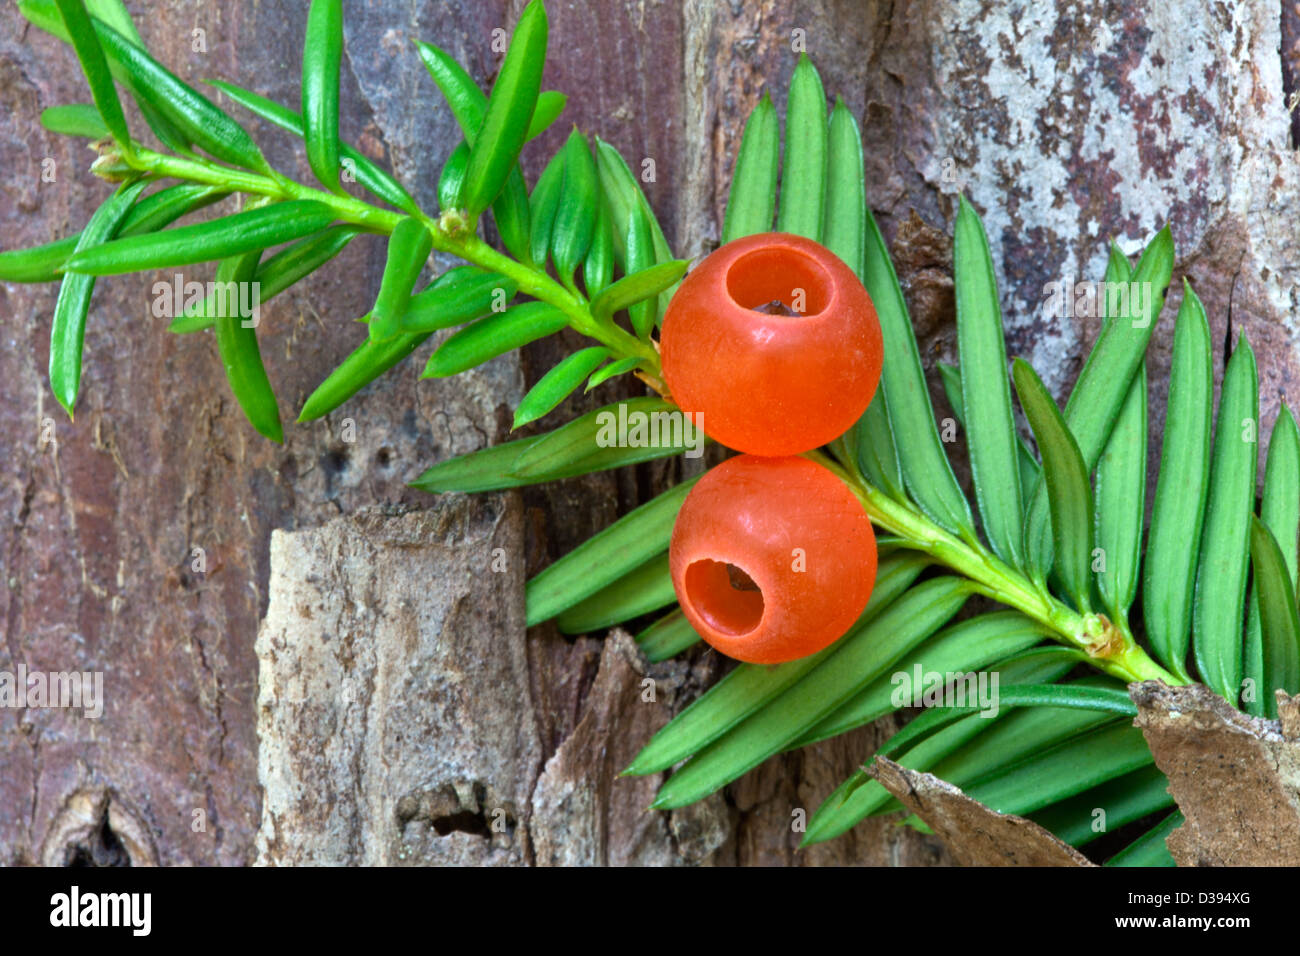 Pacific Yew tree, Elliptical seeds 1/4' long, enclosed in scarlet cups. - Stock Image